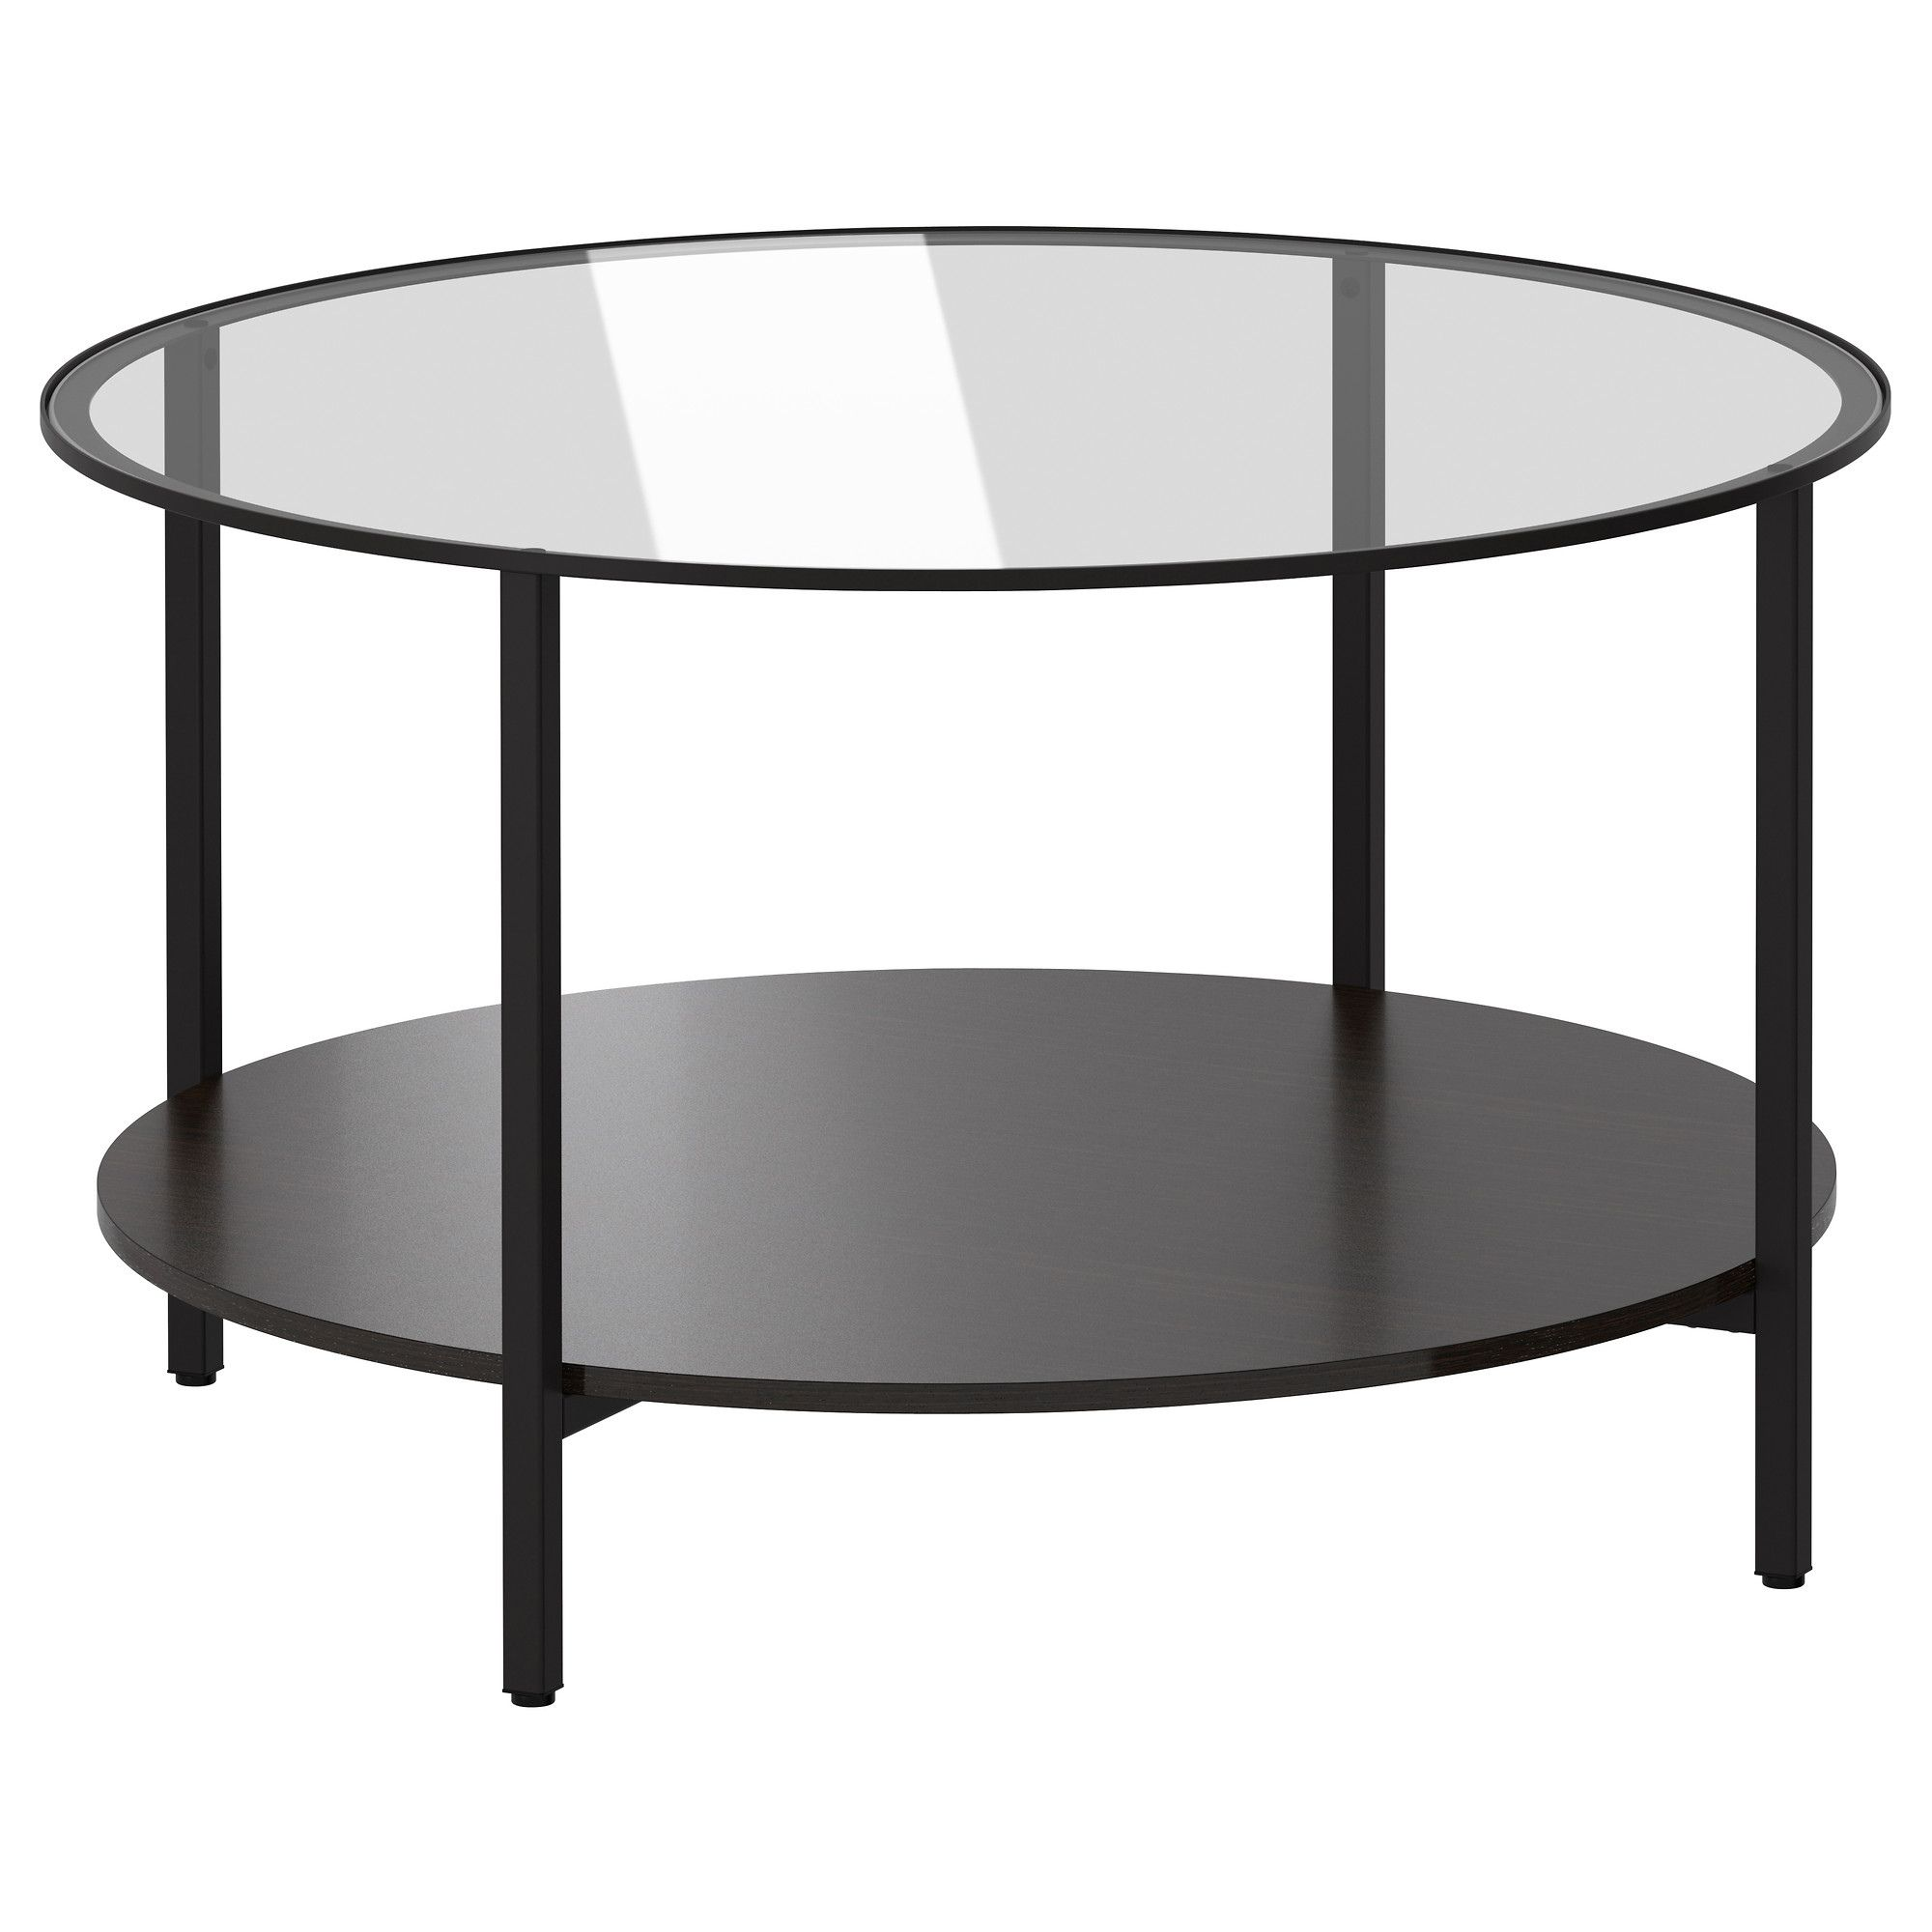 Ikea Round Glass Coffee Table Furniture Sets Living Room Check